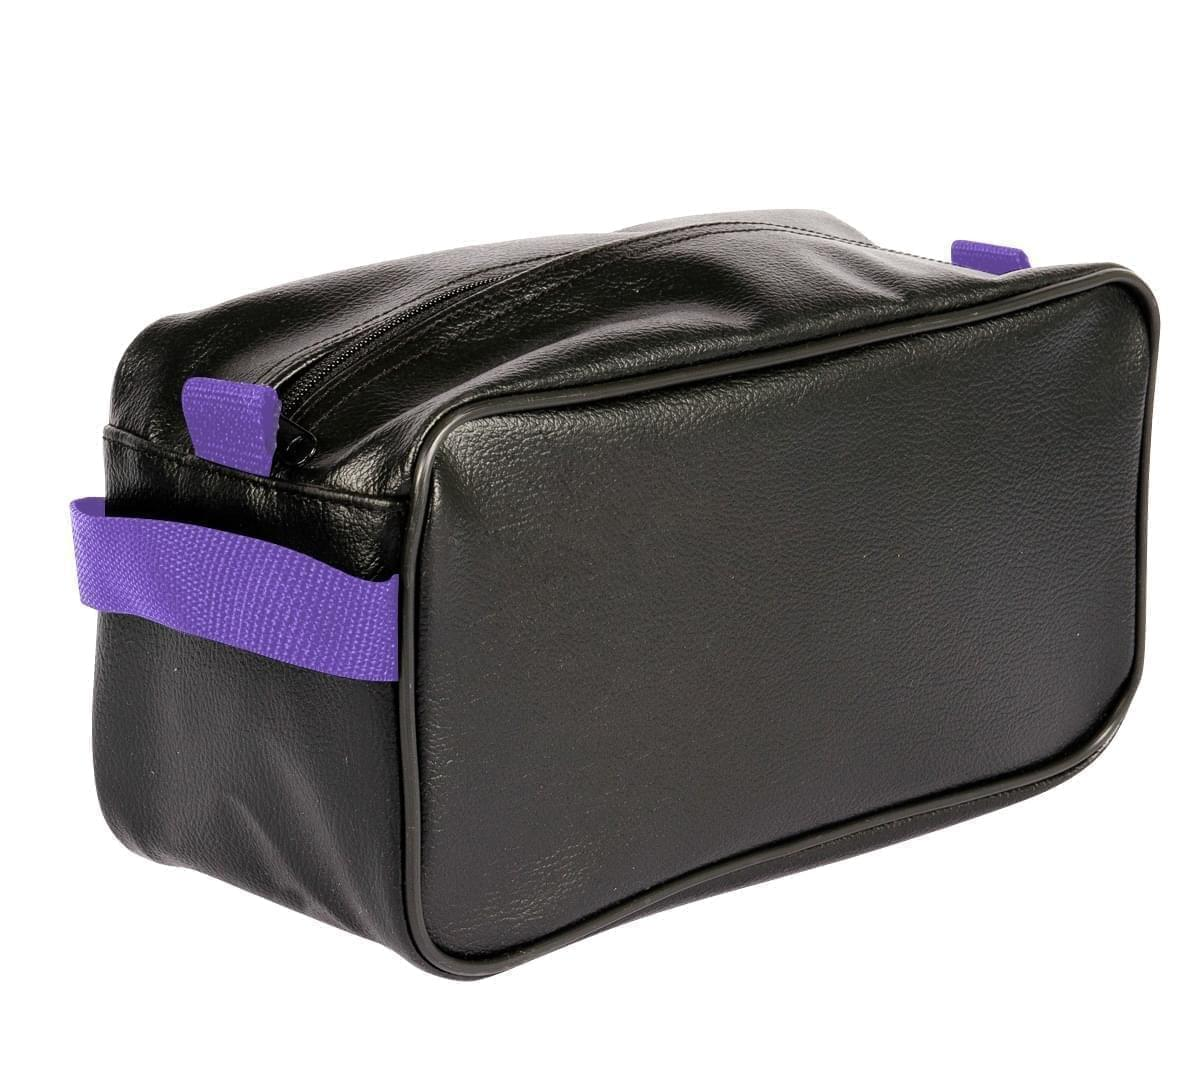 USA Made Cosmetic & Toiletry Cases, Black-Purple, 3000996-AO1